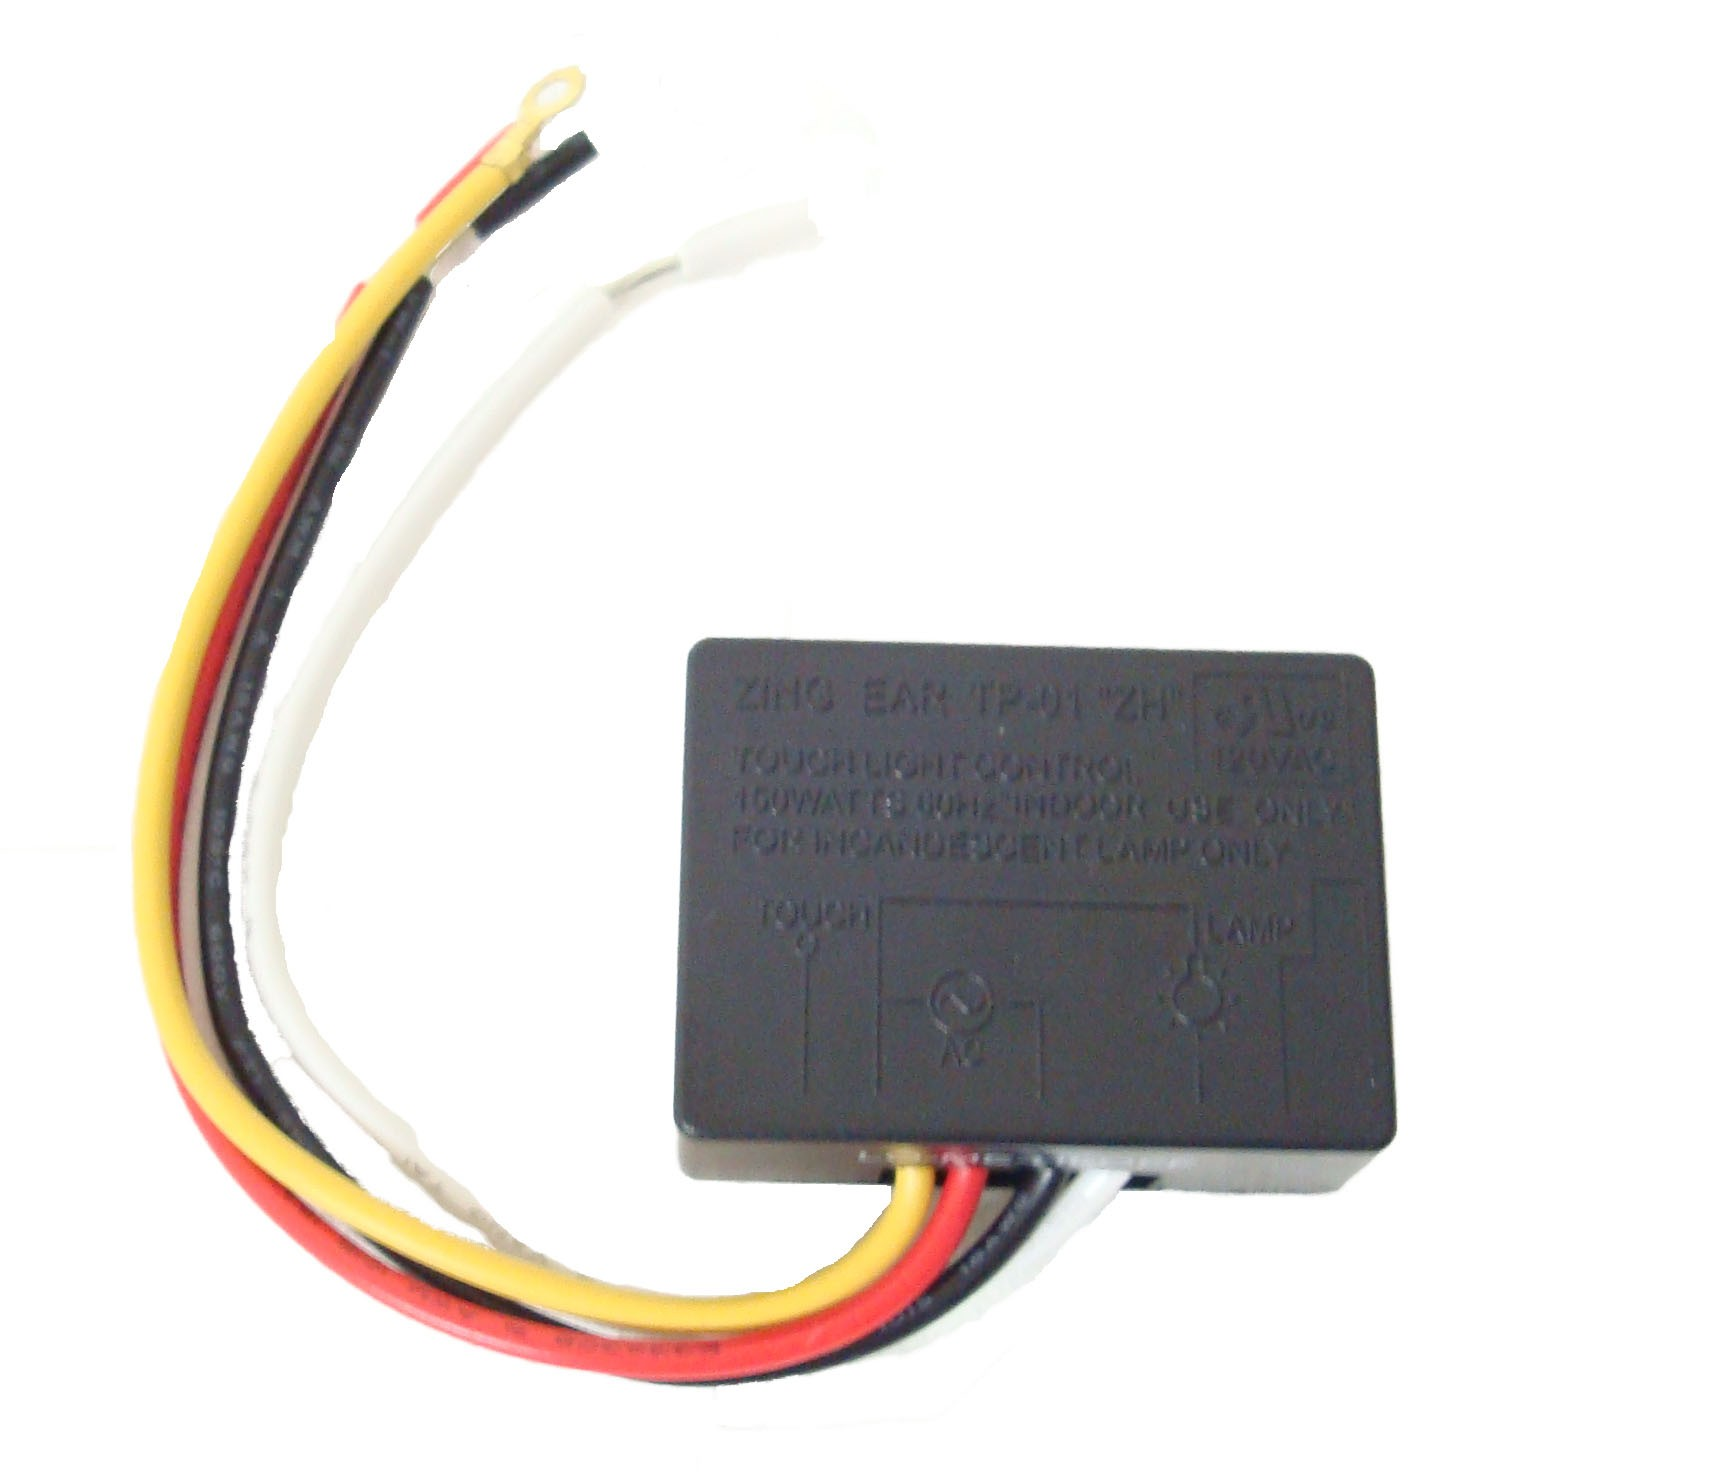 View image in new window Touch Lamp Control Switch